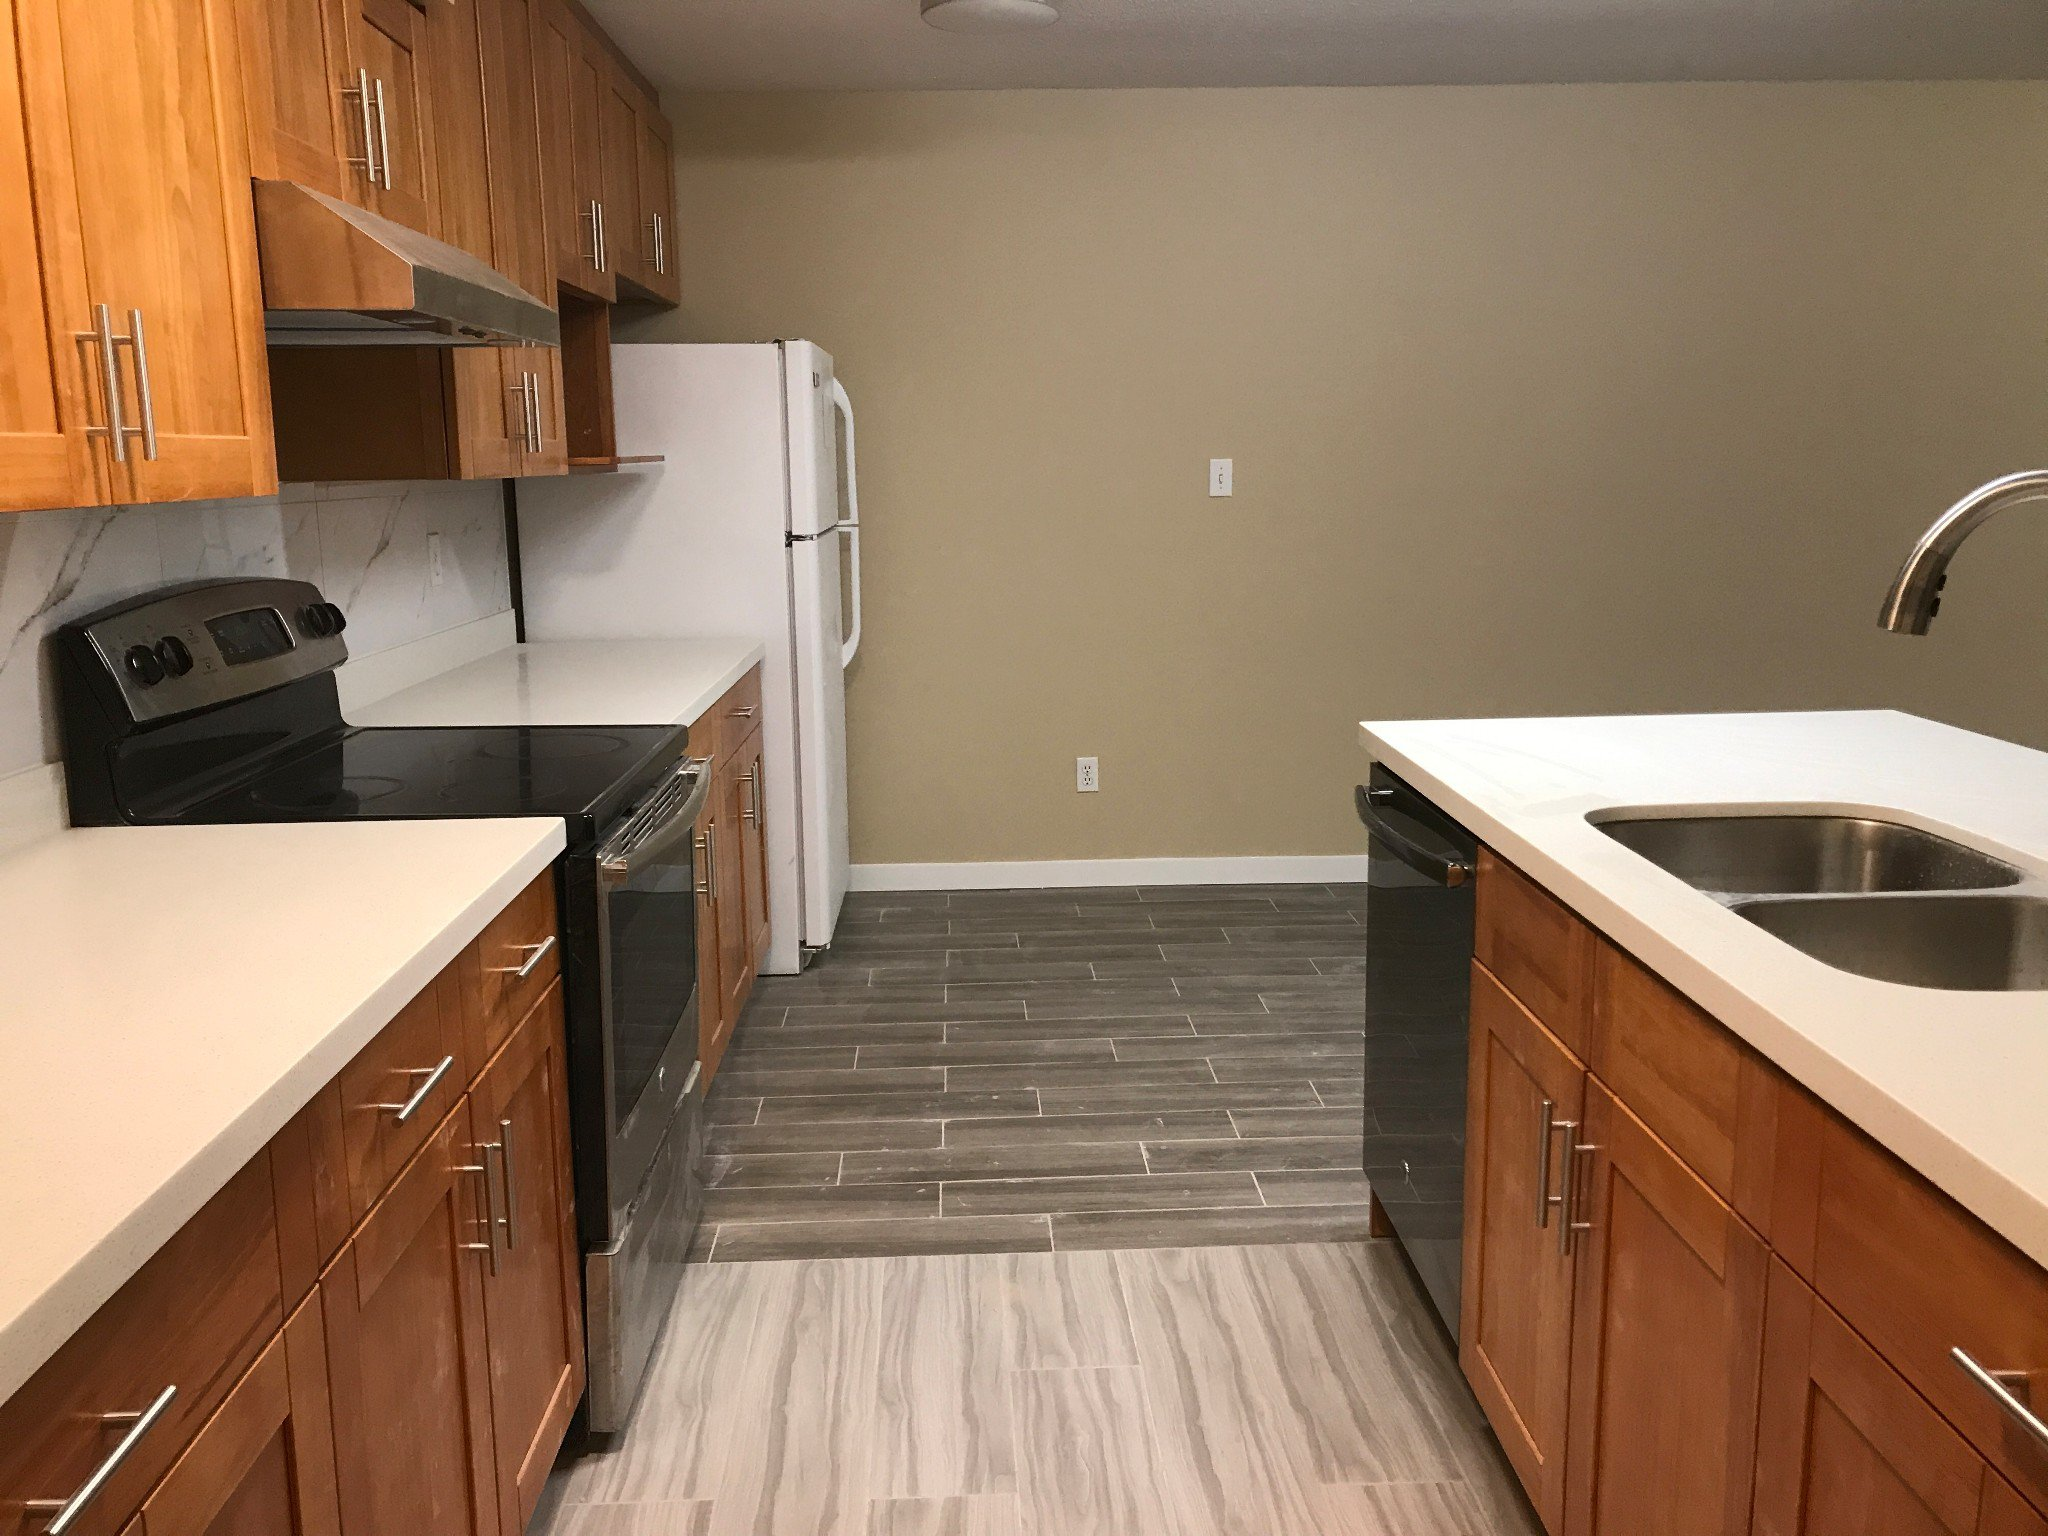 Photo 5: Photos: #309 2130 McKenzie Rd. in Abbotsford: Central Abbotsford Condo for rent